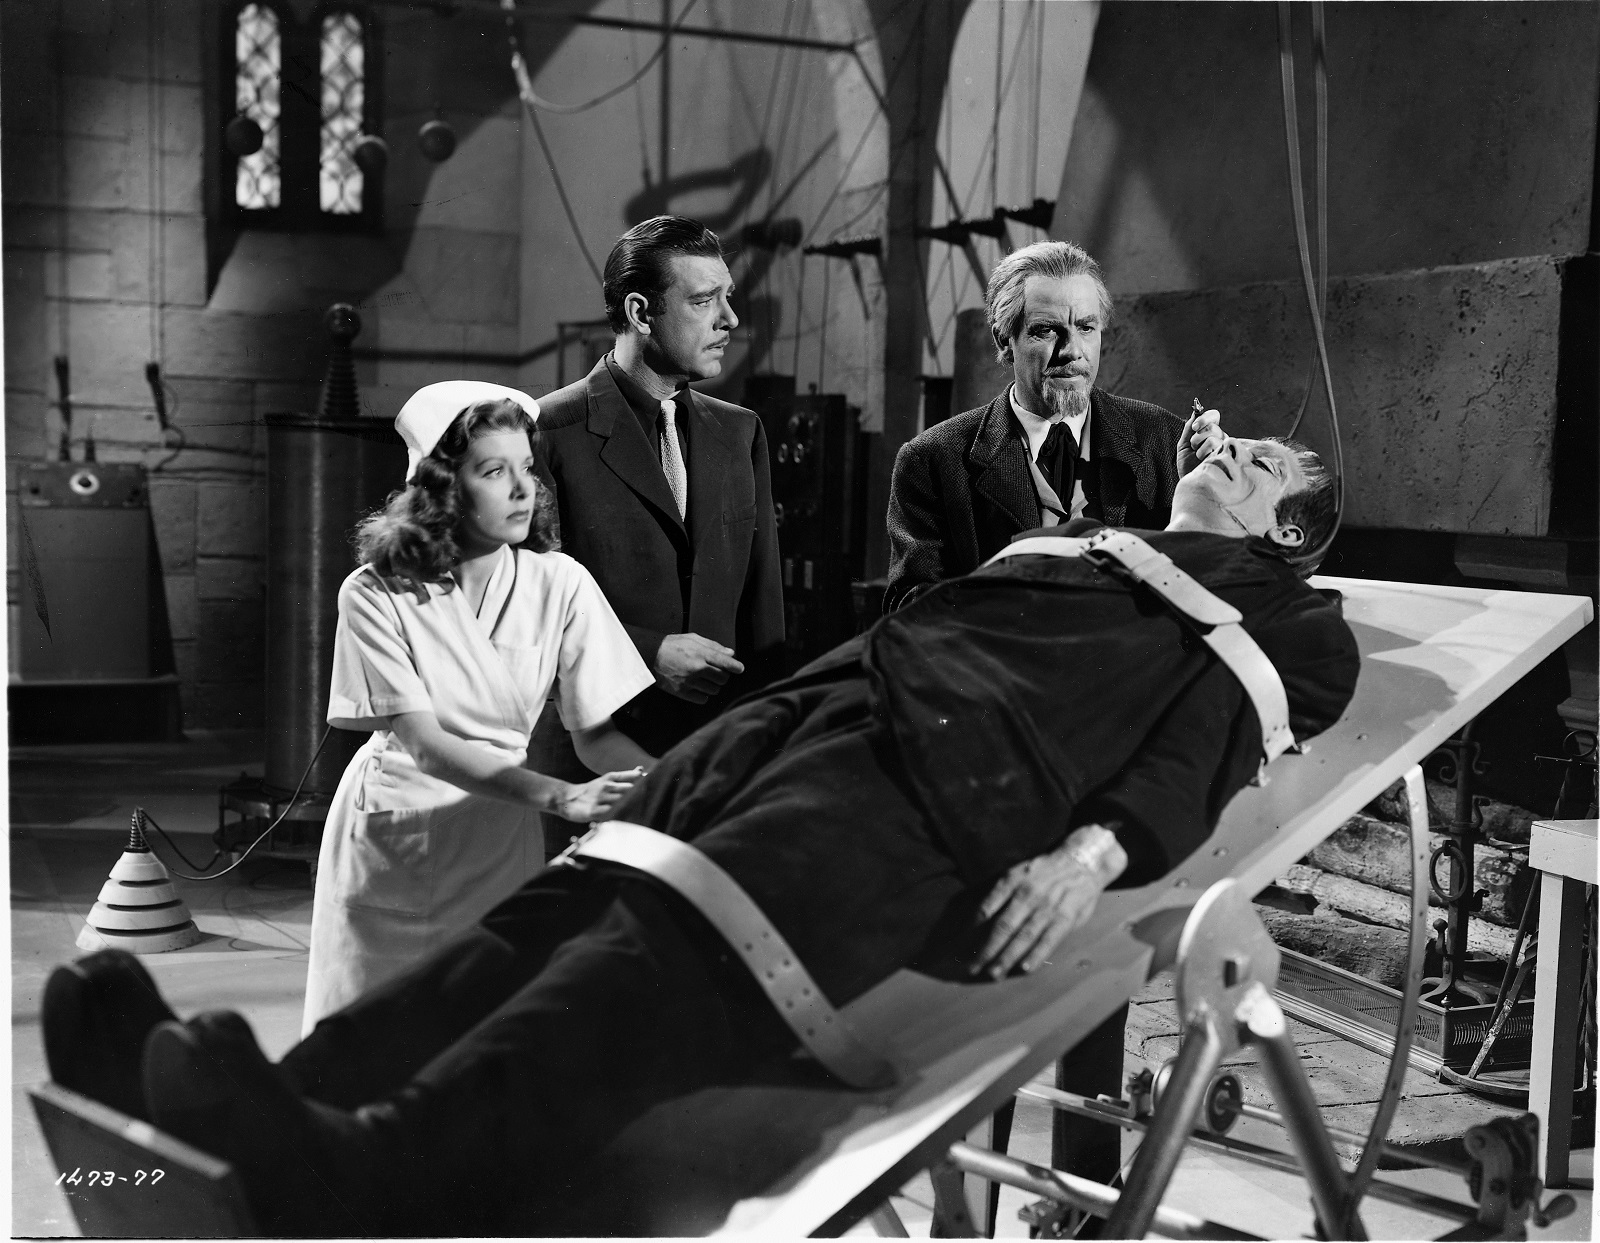 Lionel Atwill, second from right, was one of the stars of 'House of Dracula.' (News file photo)